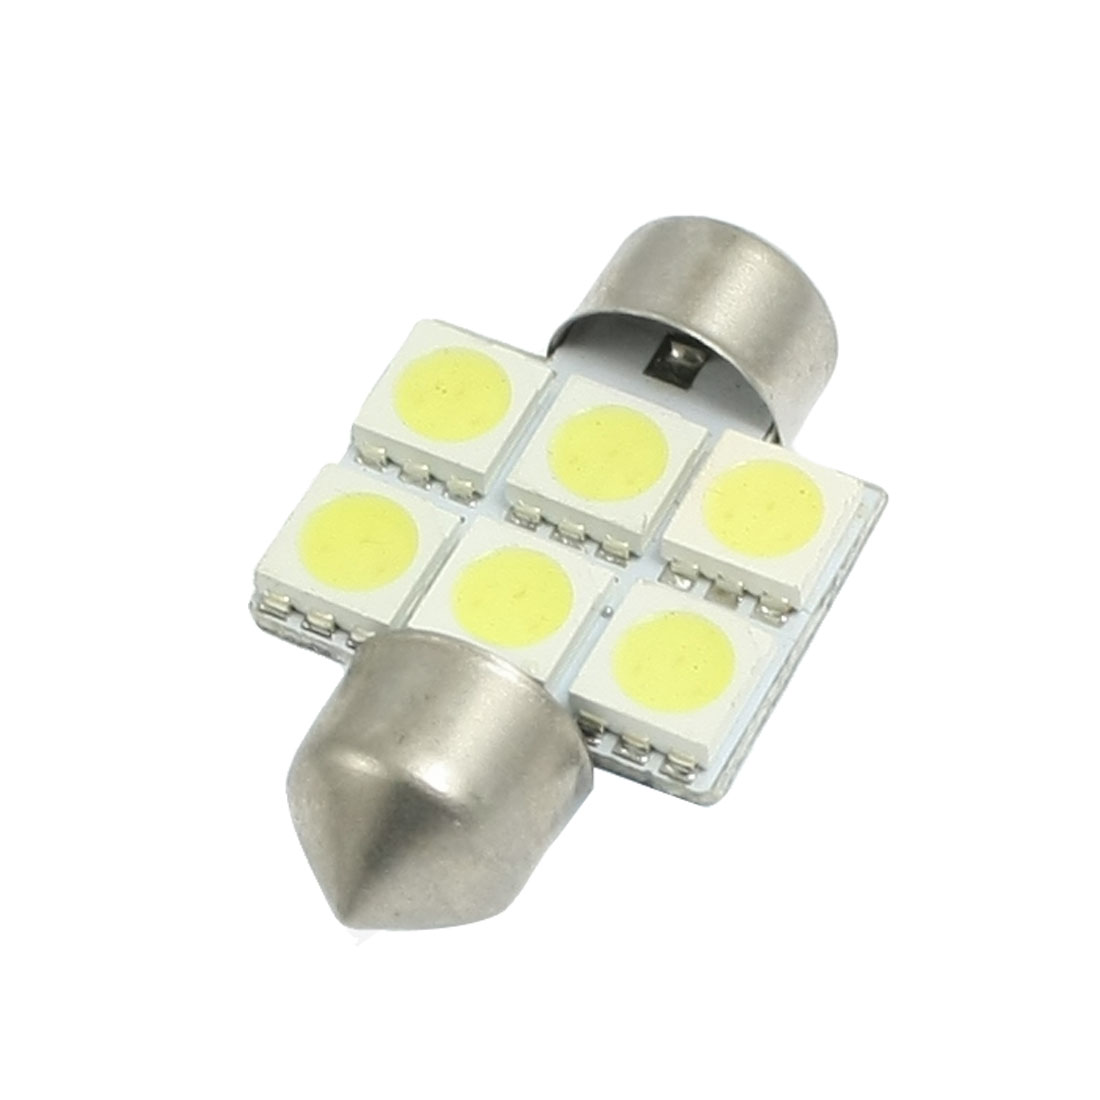 Auto Car White 6 SMD 5050 LED Festoon Interior Dome Light Lamp Bulb 31mm